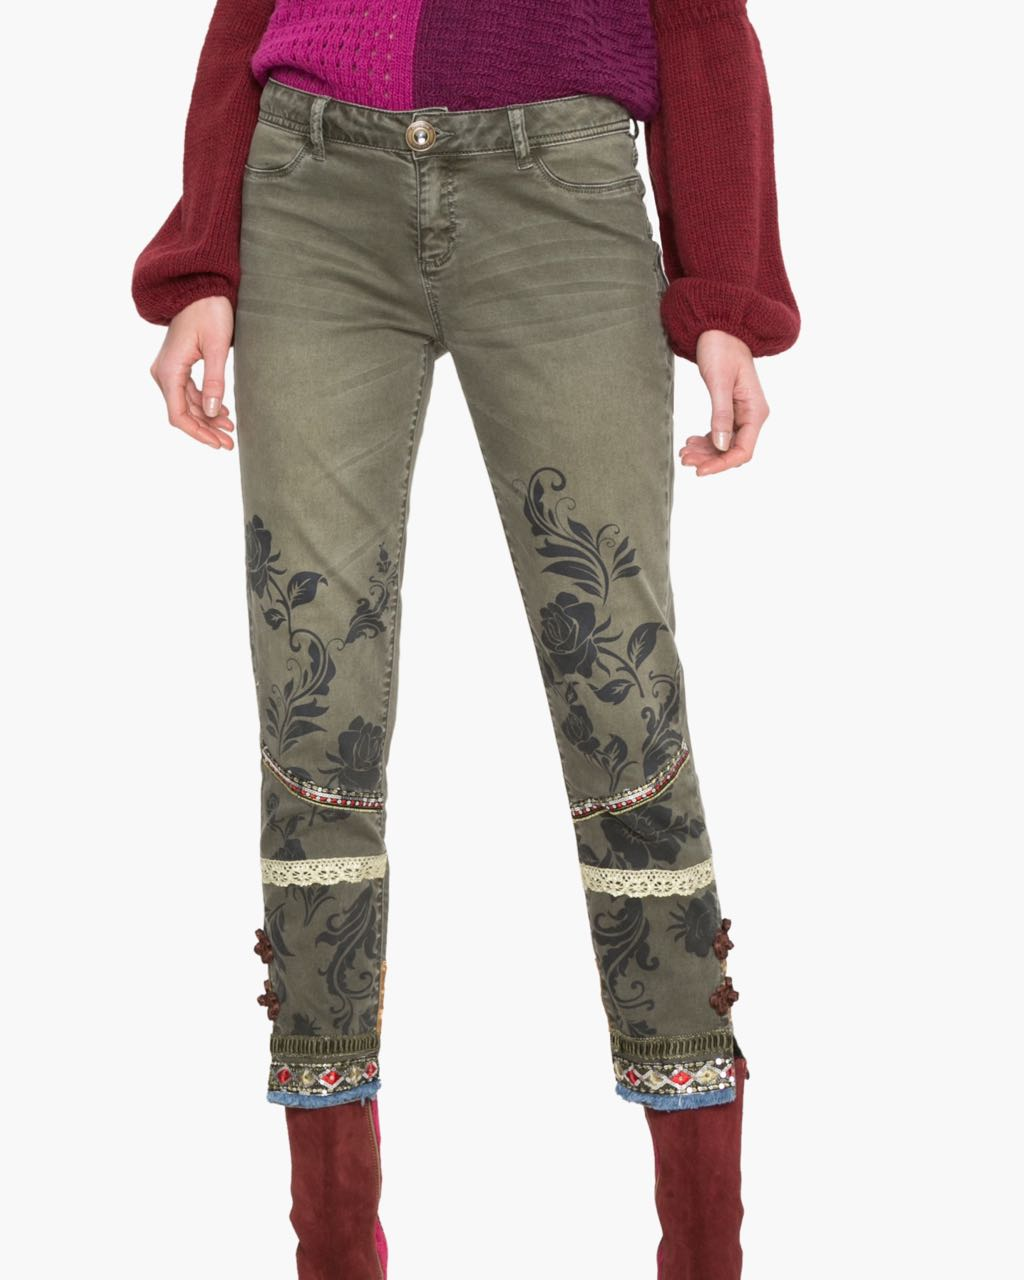 17WWPN21_6100 Desigual Pants Harry Buy Online